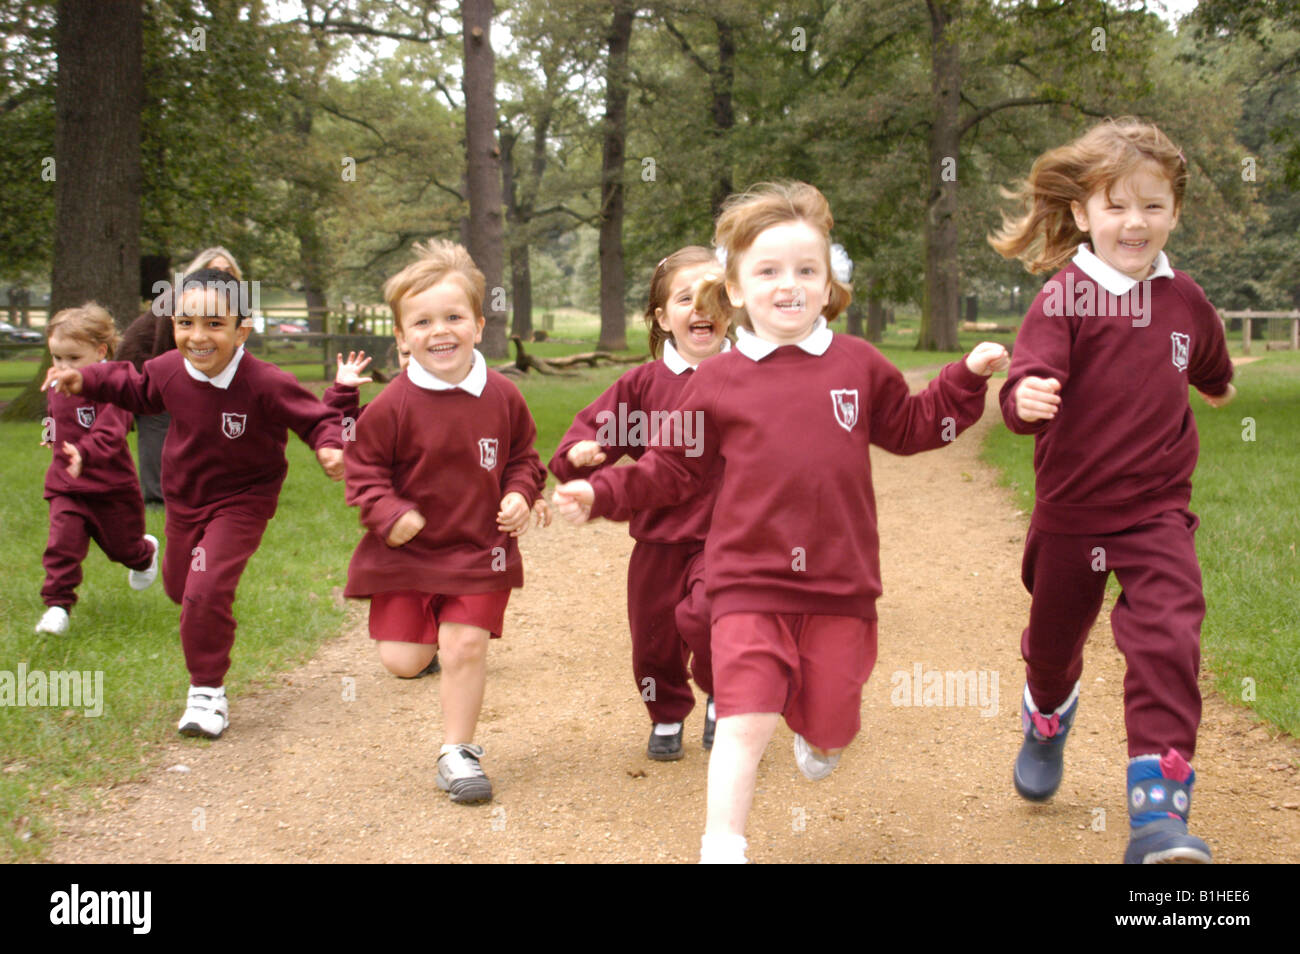 School children running through a park - Stock Image